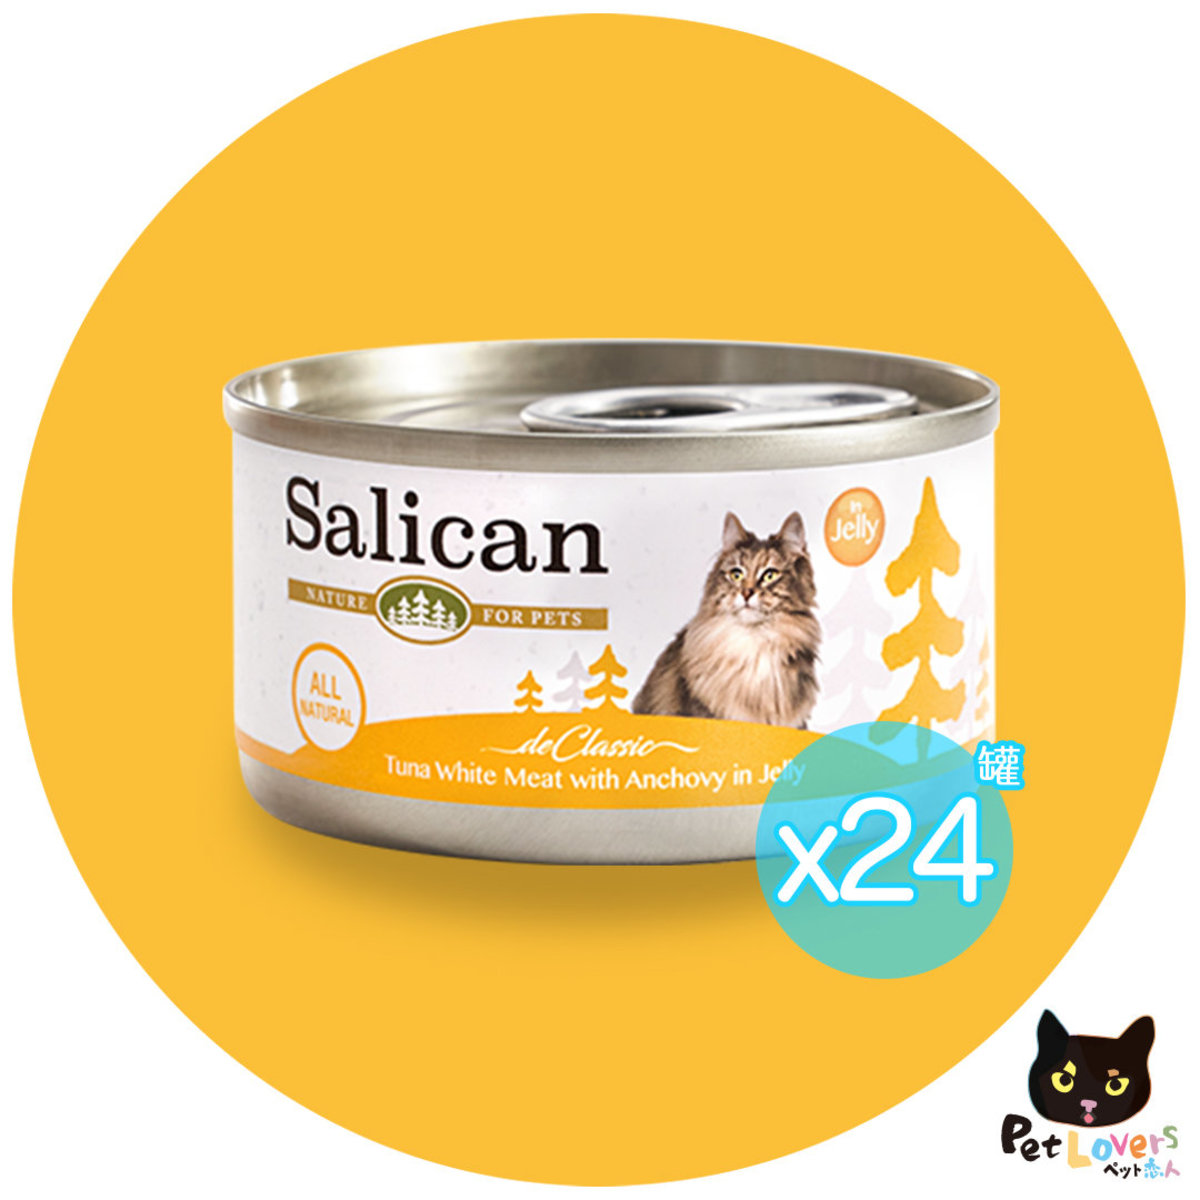 Tuna white meat with Anchovy in Jelly 85g